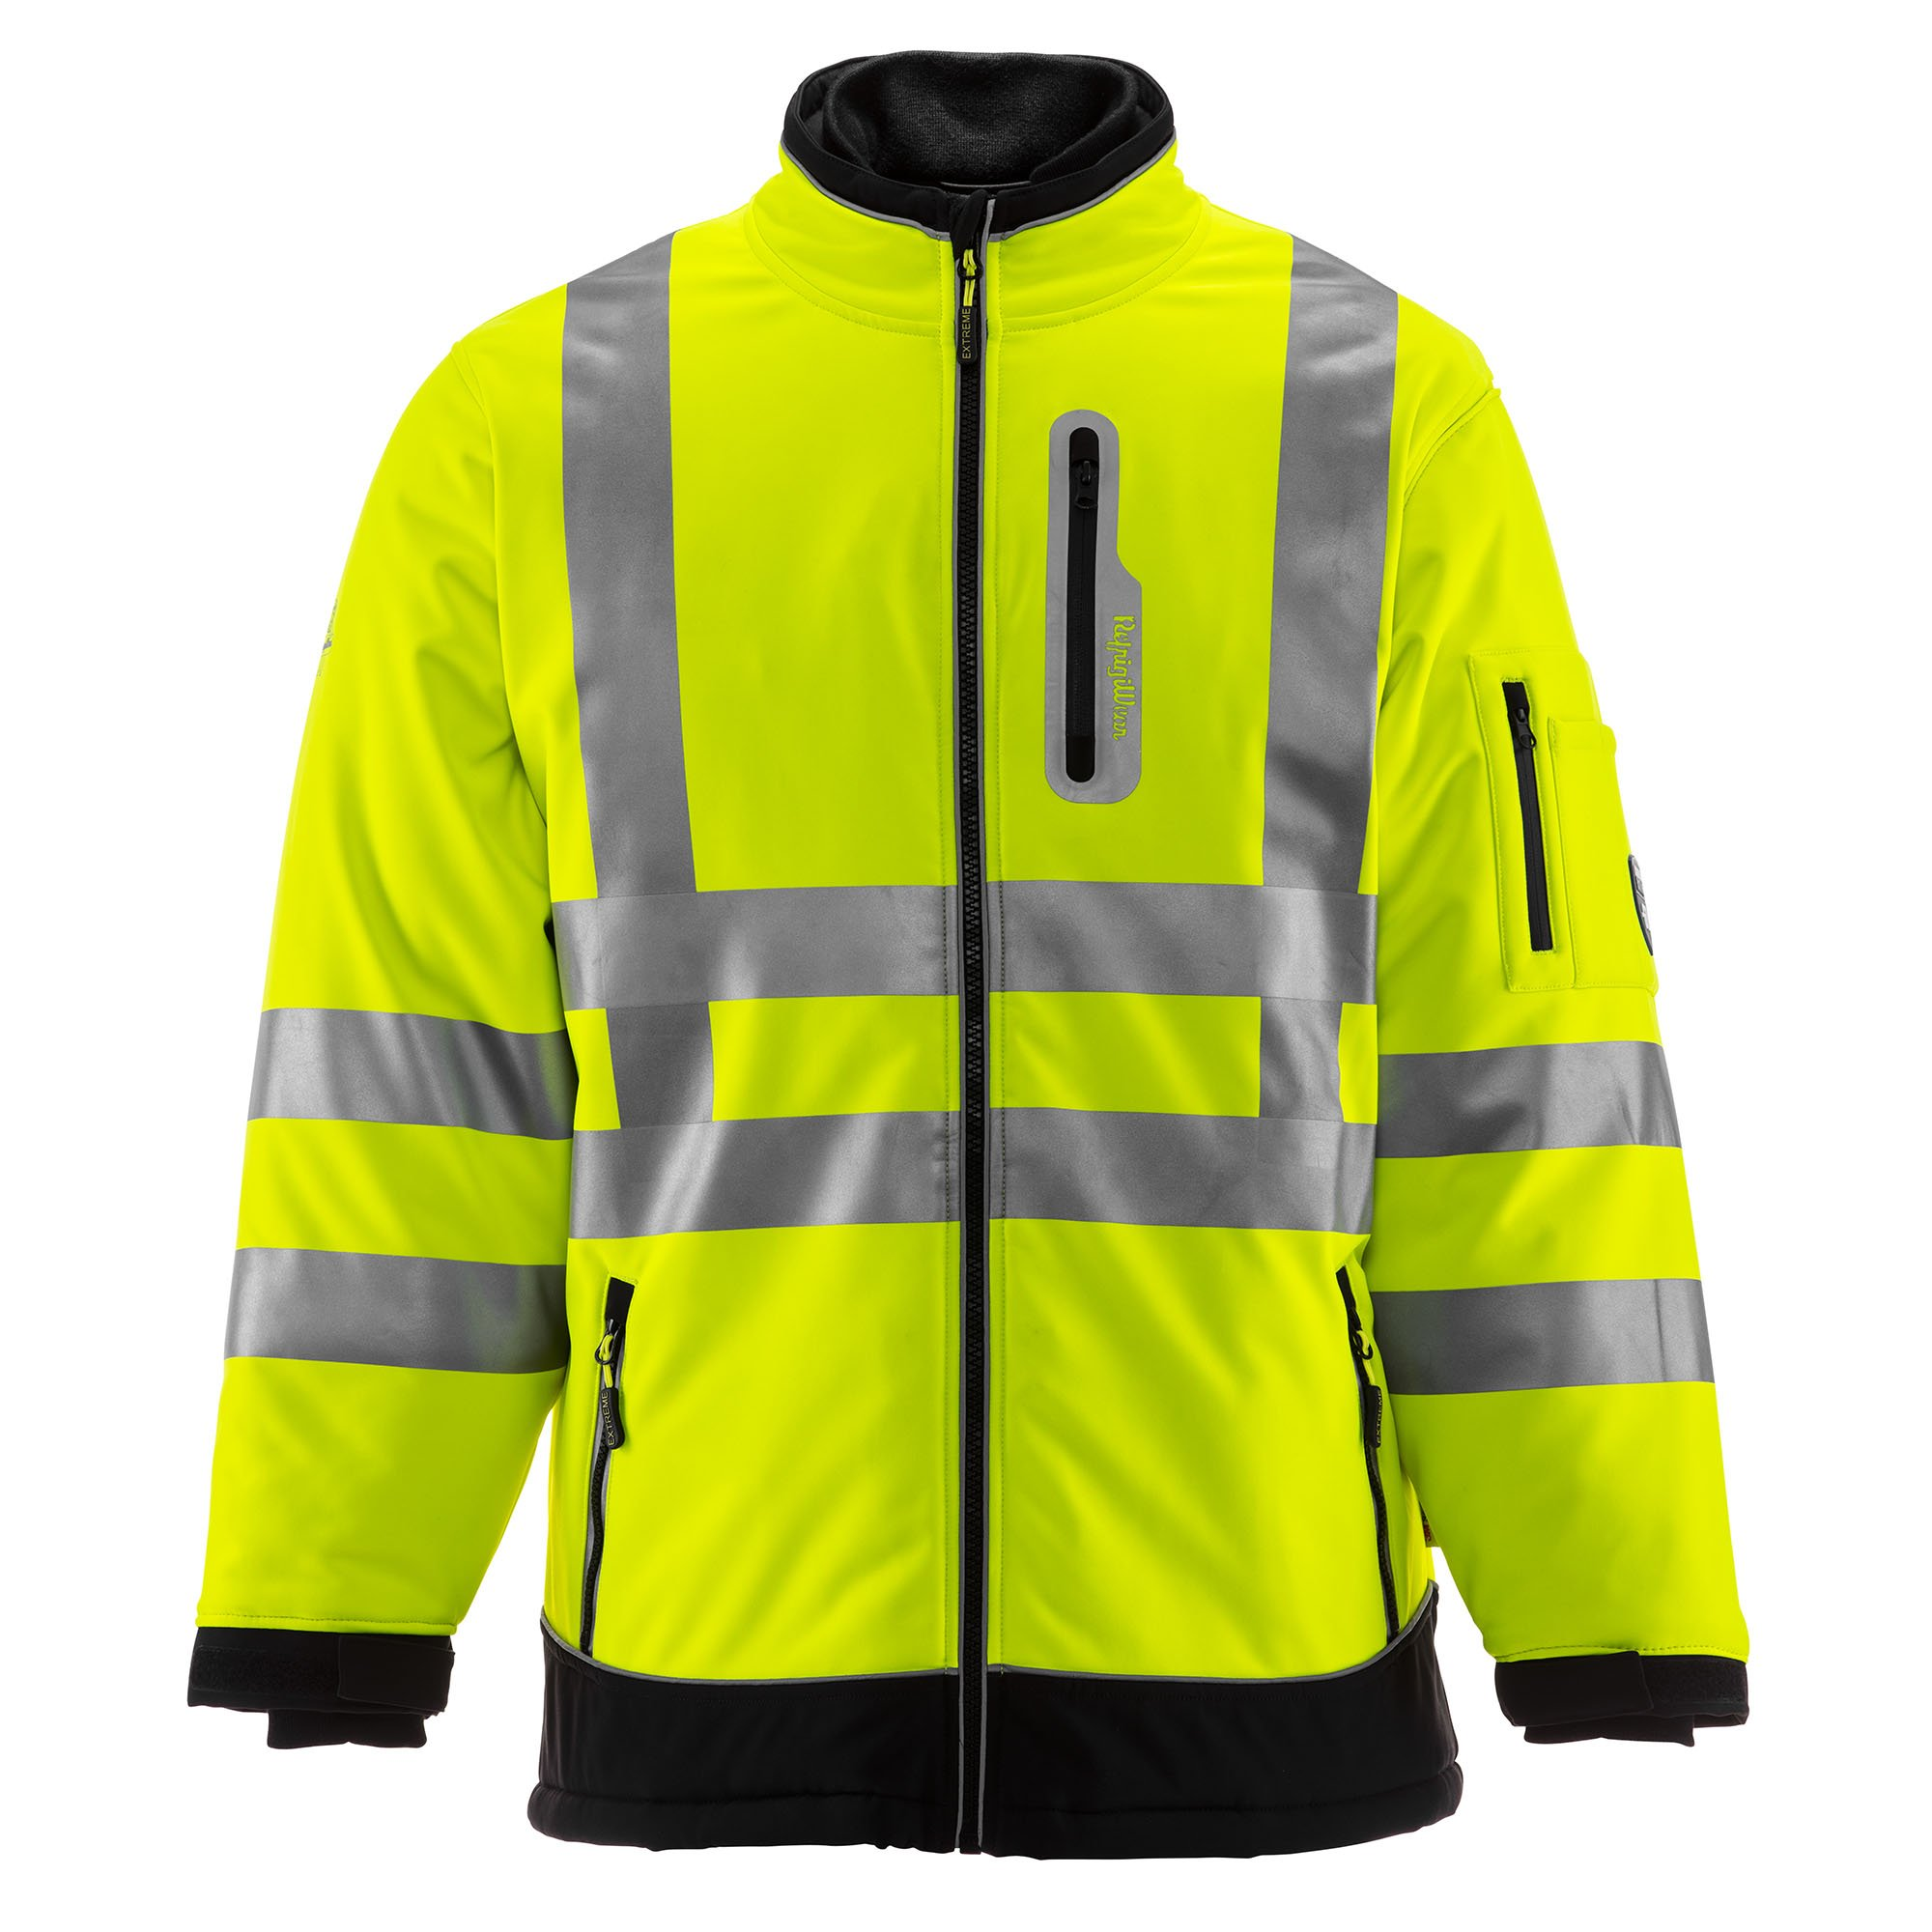 RefrigiWear Men's Hivis Extreme Softshell Jacket - ANSI Class 3 High Visibility Lime with Reflective Tape (Black/Lime, X-Large)